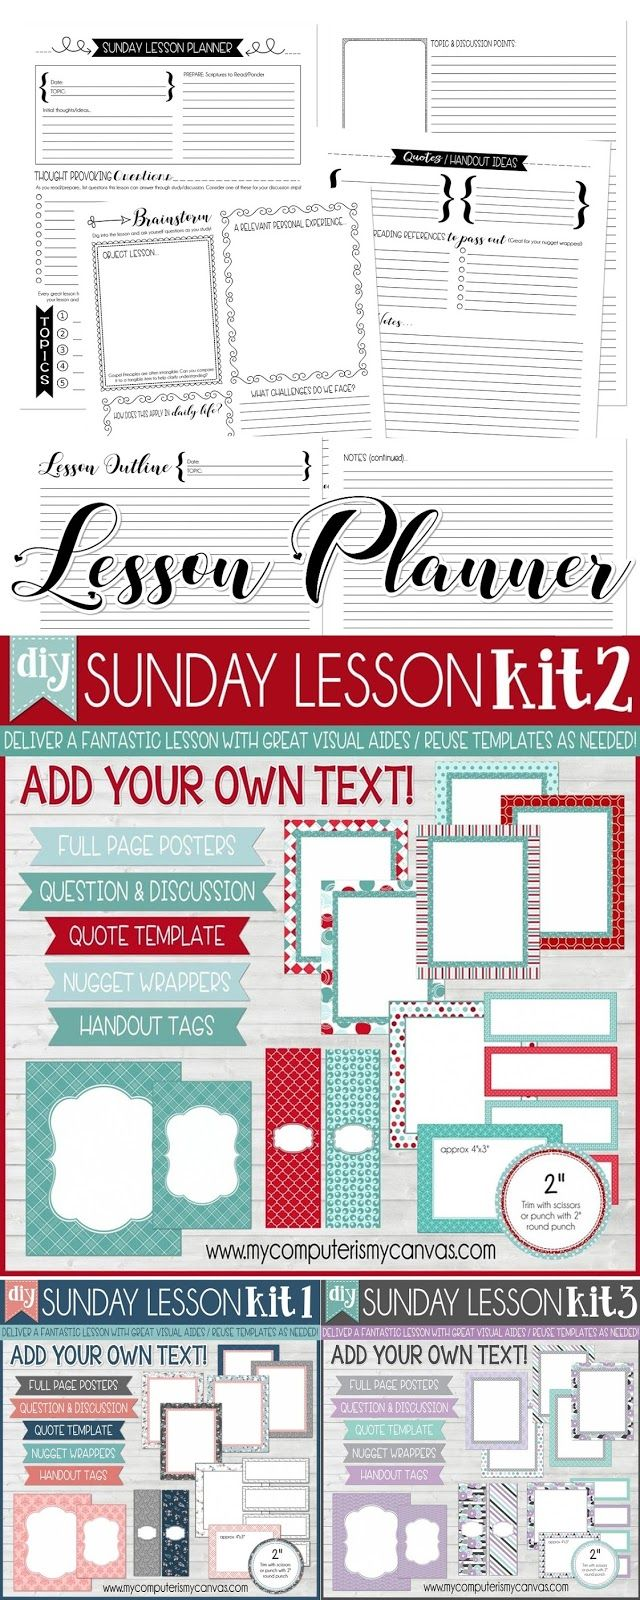 DIY Sunday Lesson Kits - Blank EDITABLE Templates to create visuals for any lesson, any age at any church! BLANK Handout Tags and Nugget Wrappers included + lesson planner pages too! YW Lesson Kits, RS Lesson Kits, Come Follow Me, Editable Sunday Lesson Kits, #mycomputerismycanvas